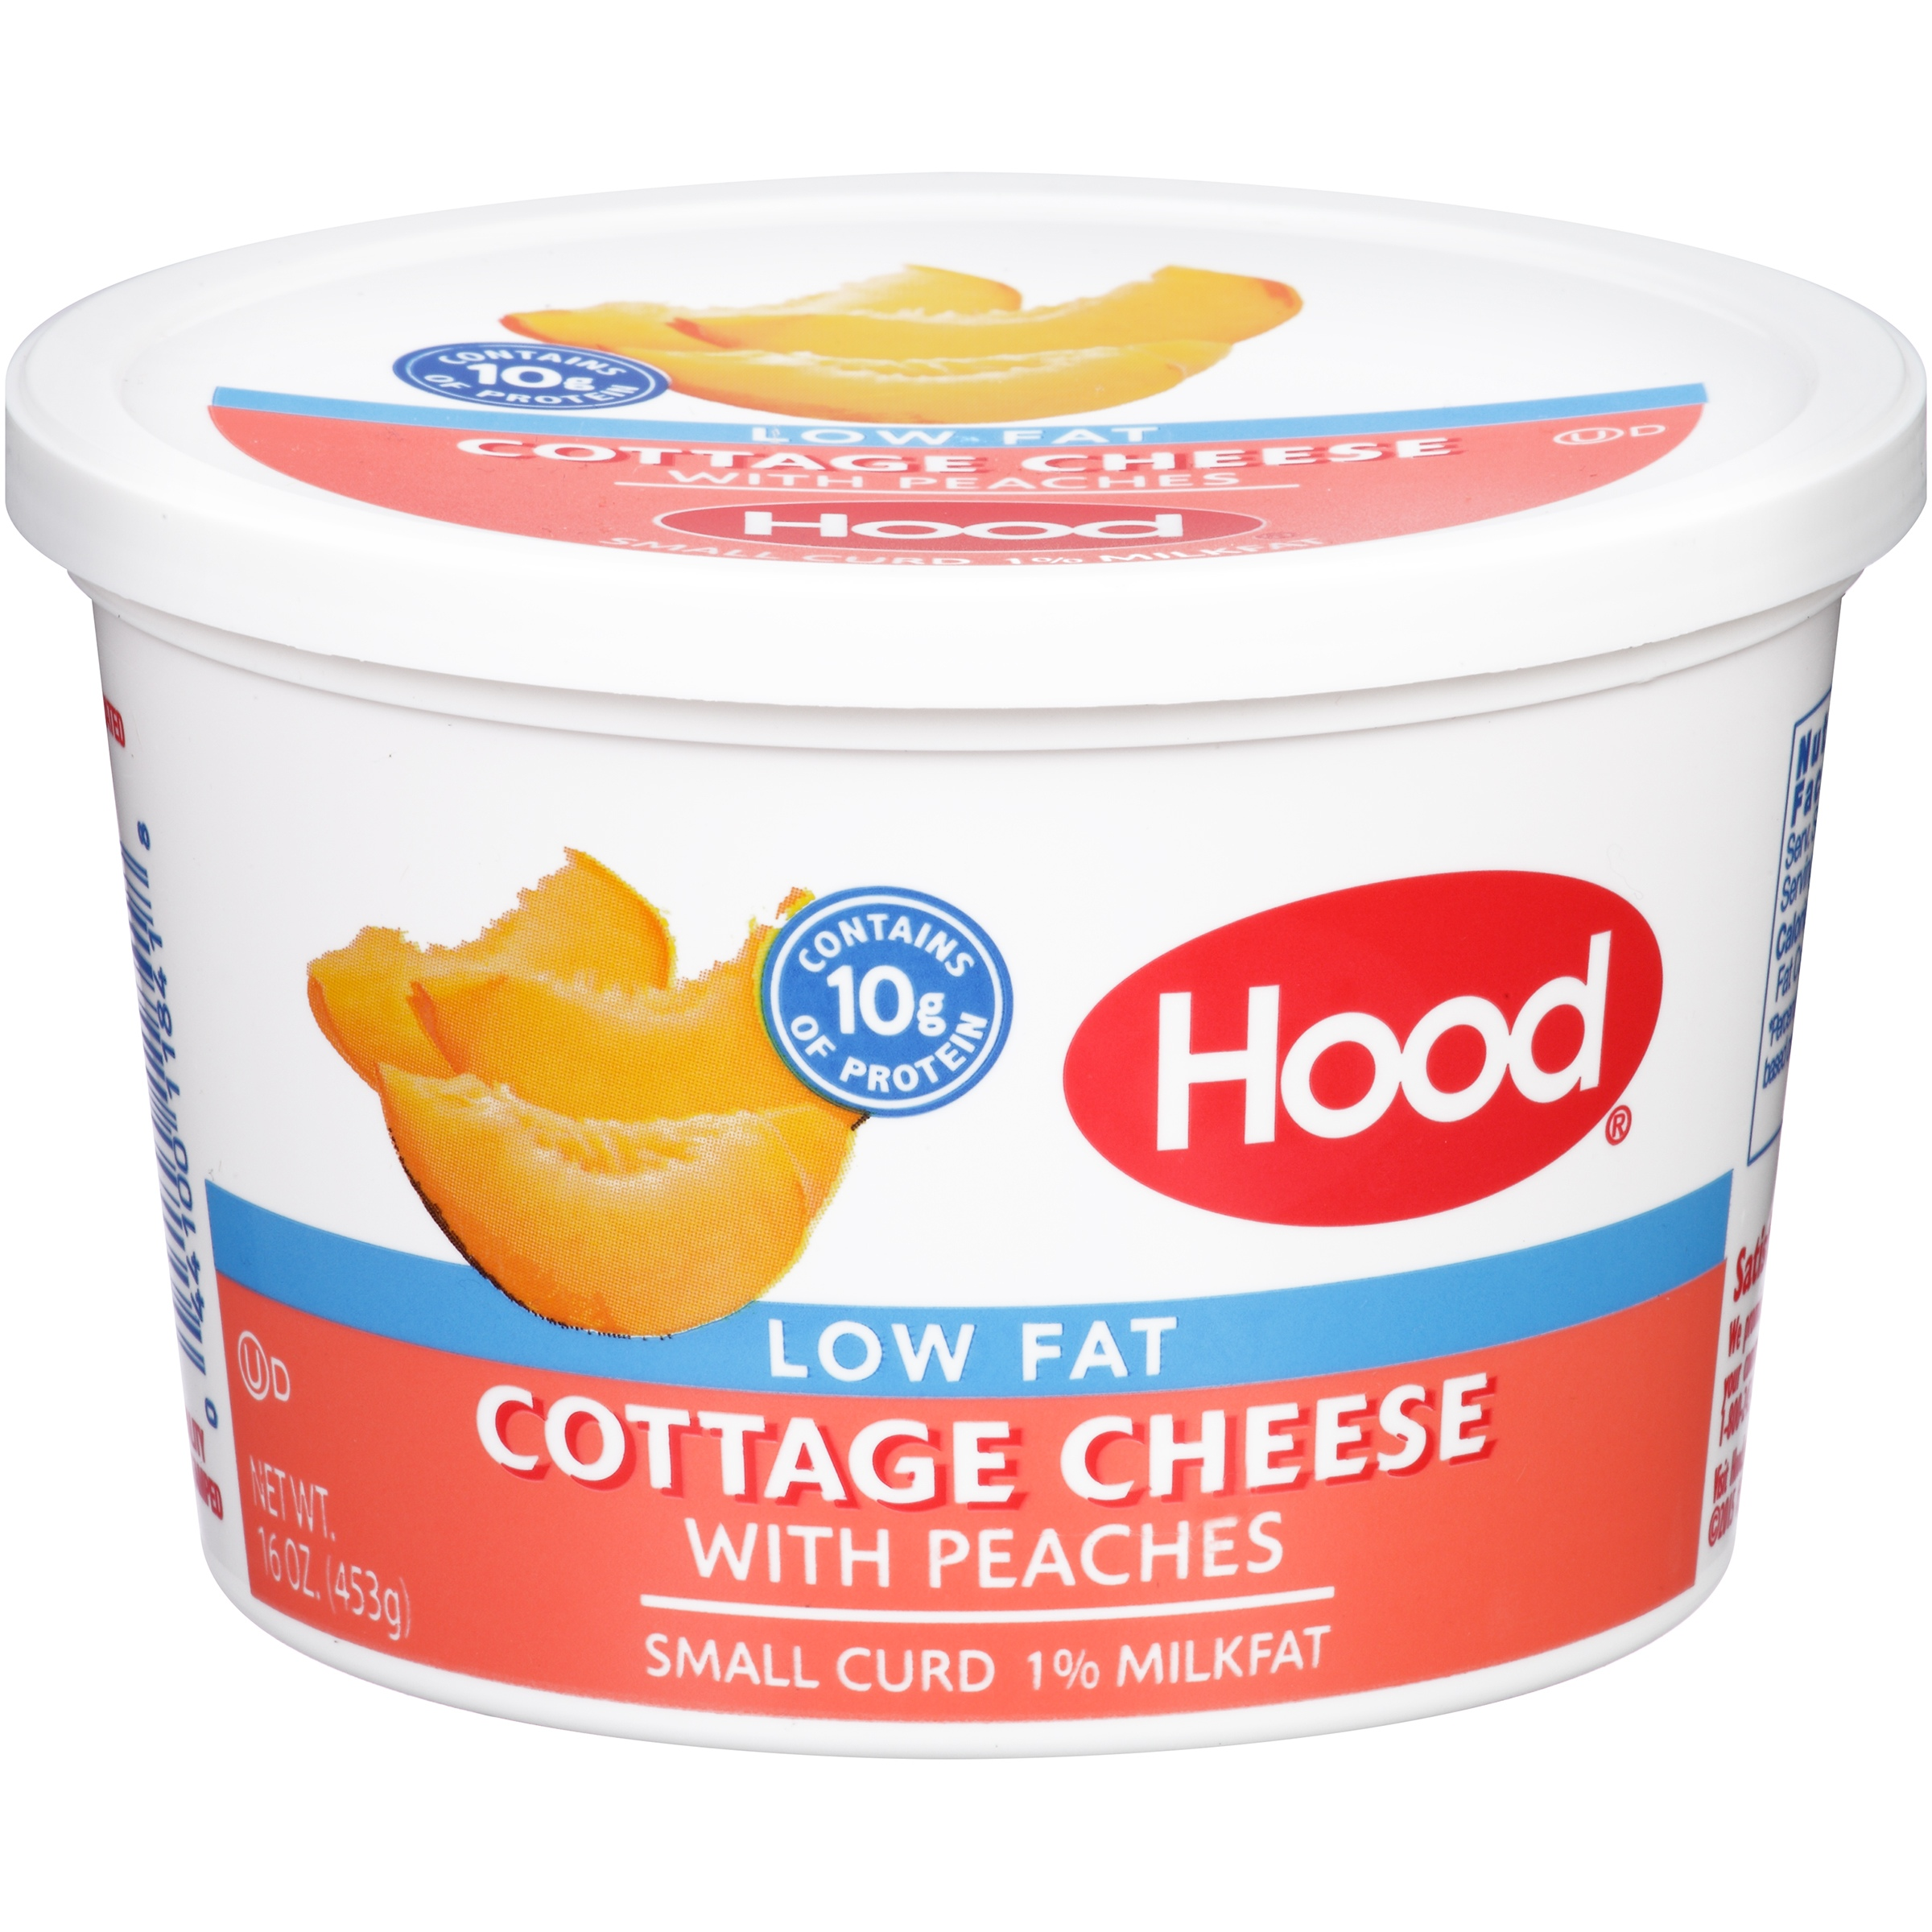 hood low fat cottage cheese with peaches small curd 1 milkfat